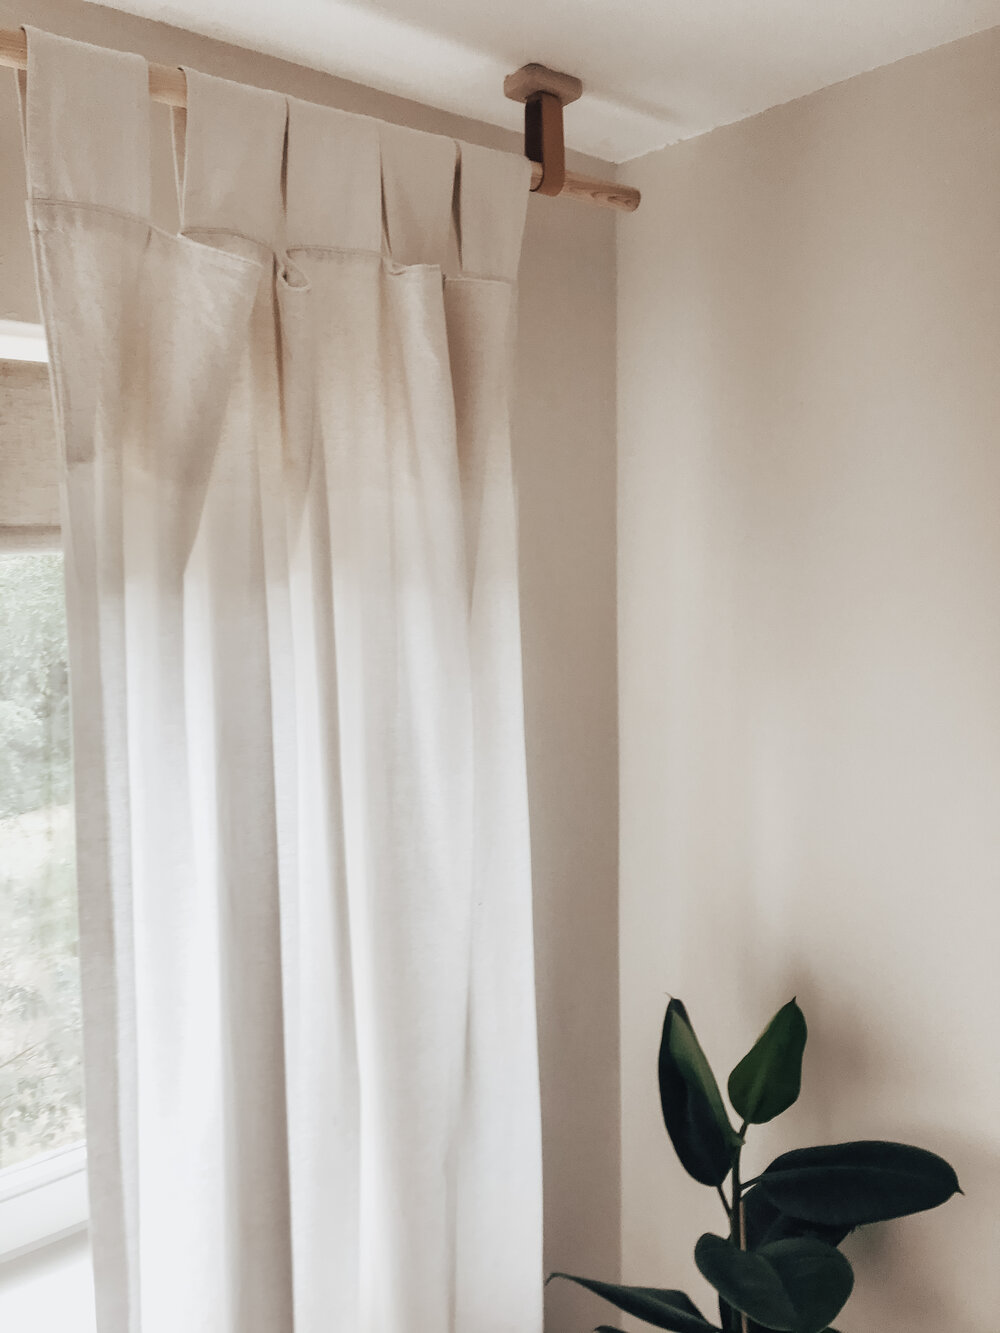 DIY Wooden Curtain Rods / pole with Leather Straps — Style Squeeze